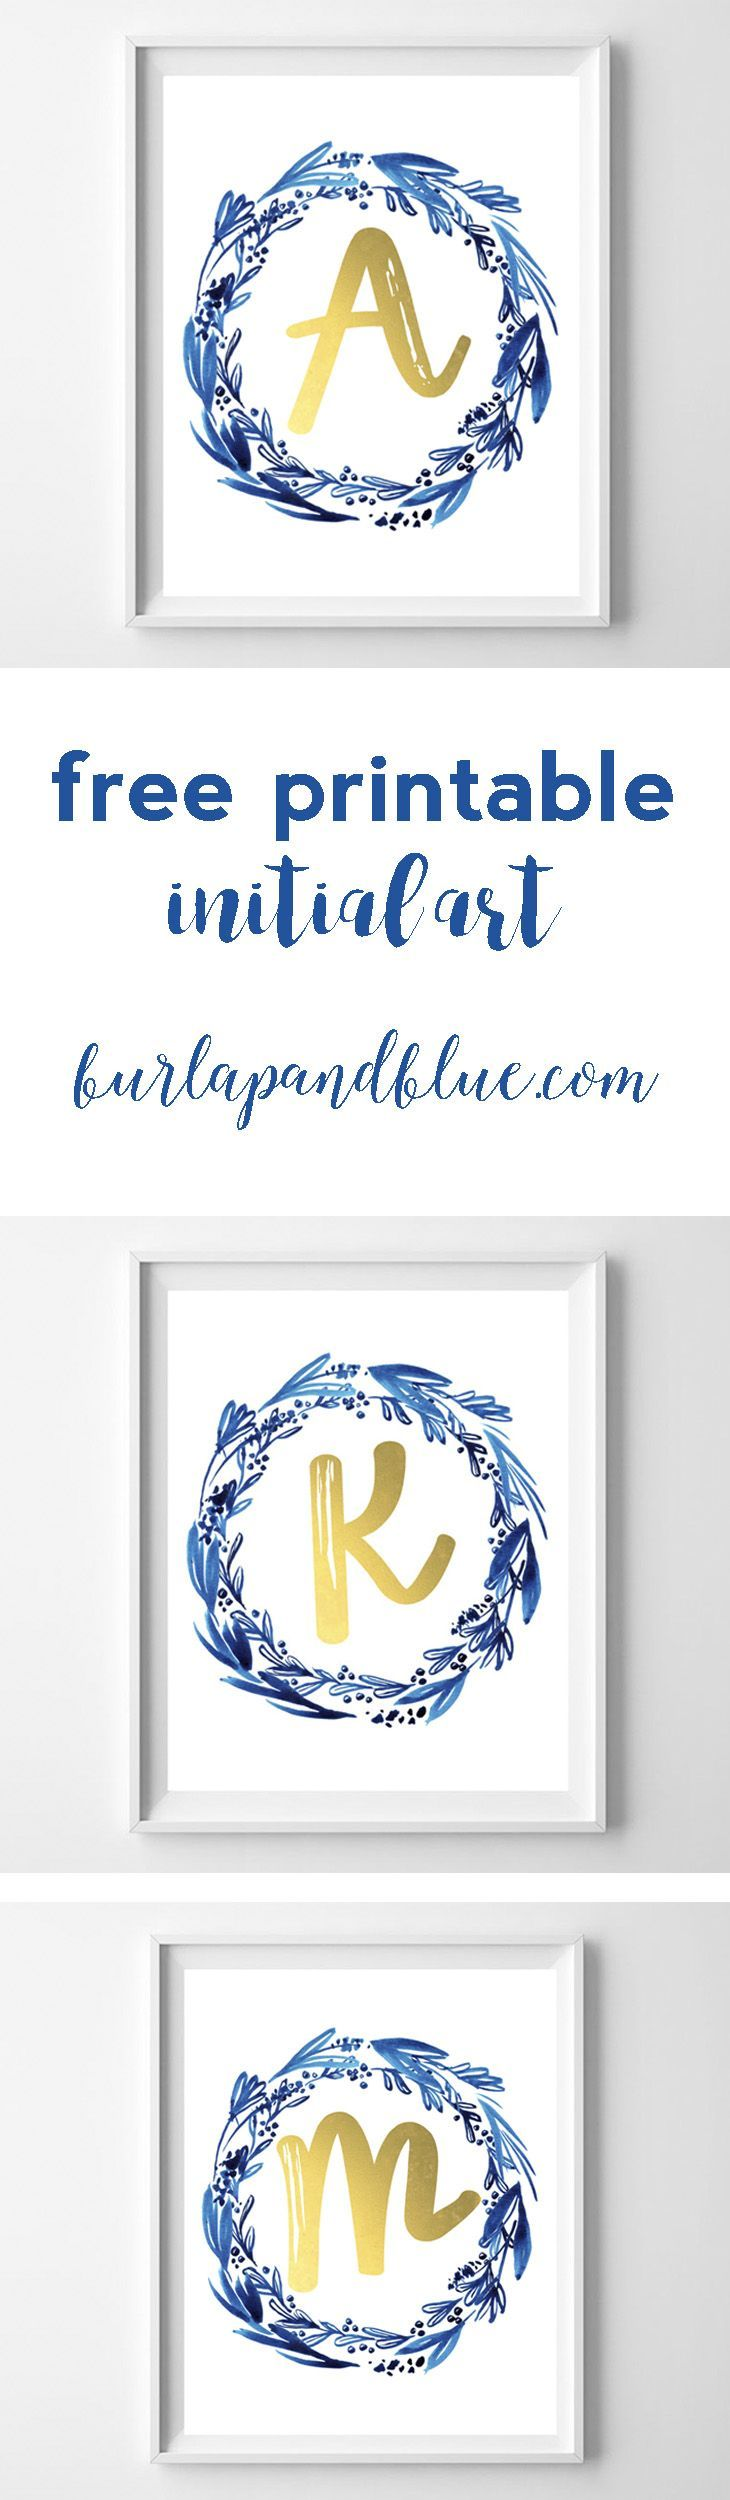 Home Decor Photos Free diy home decor ideas beautiful spring home decor ideas that you can make at home Free Printable Initial Art In Indigo And Gold Perfect For A Gift Nursery Or